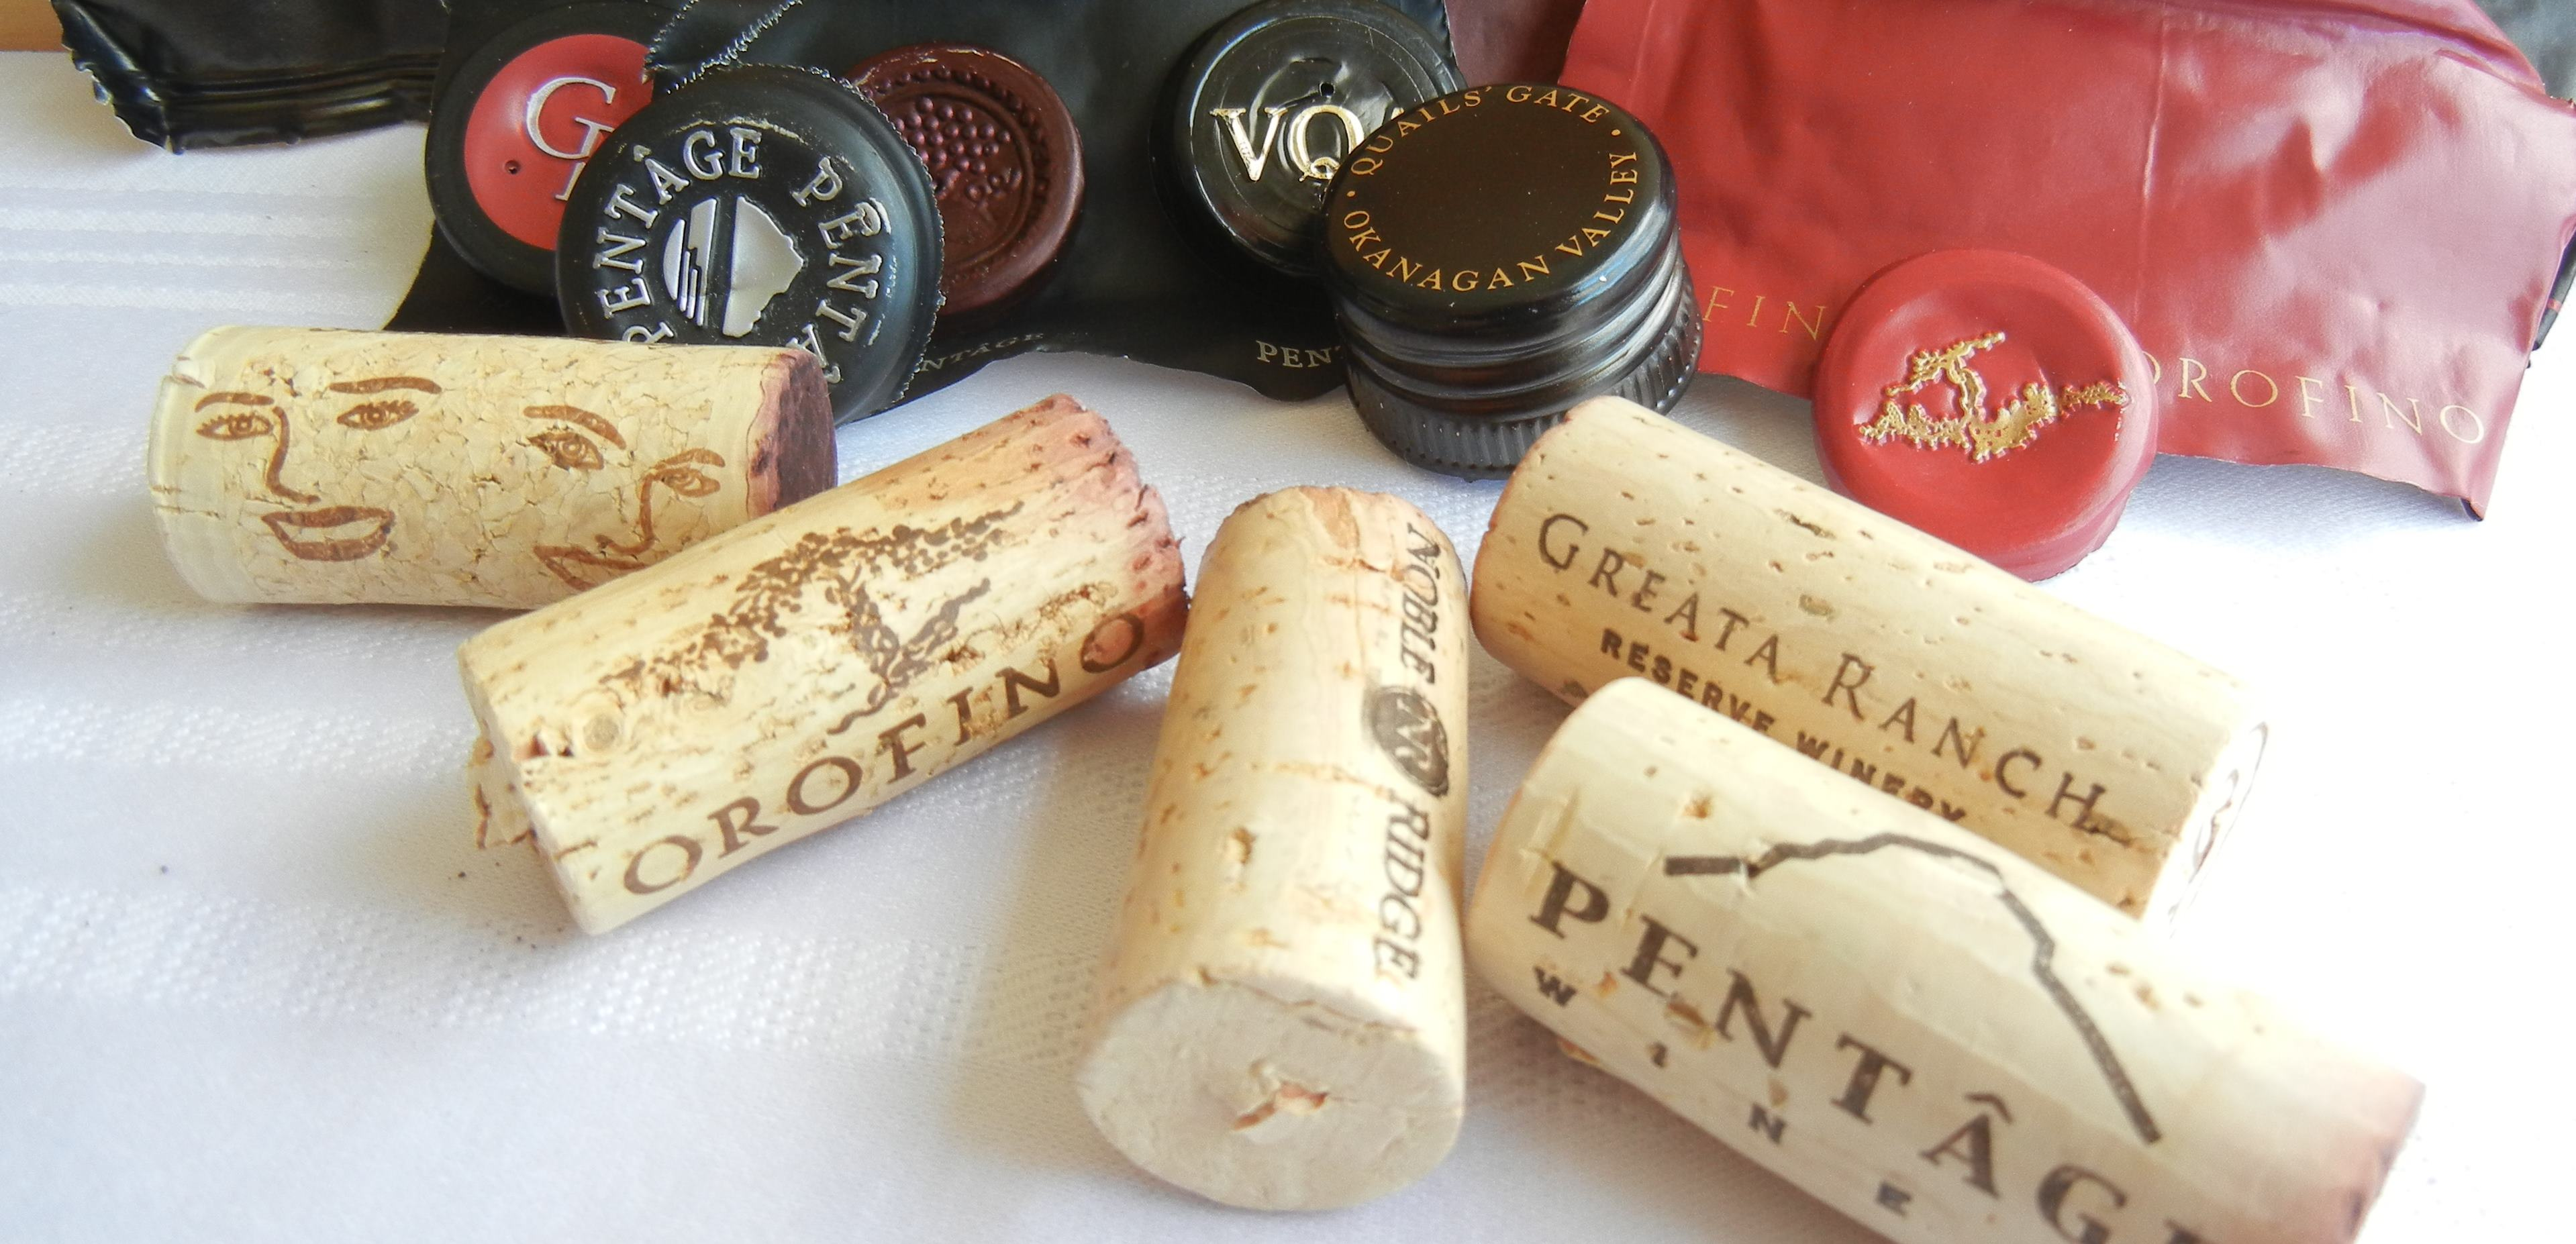 Caps Corks Capsules 2007 BC Pinot Noirs Tasting 8